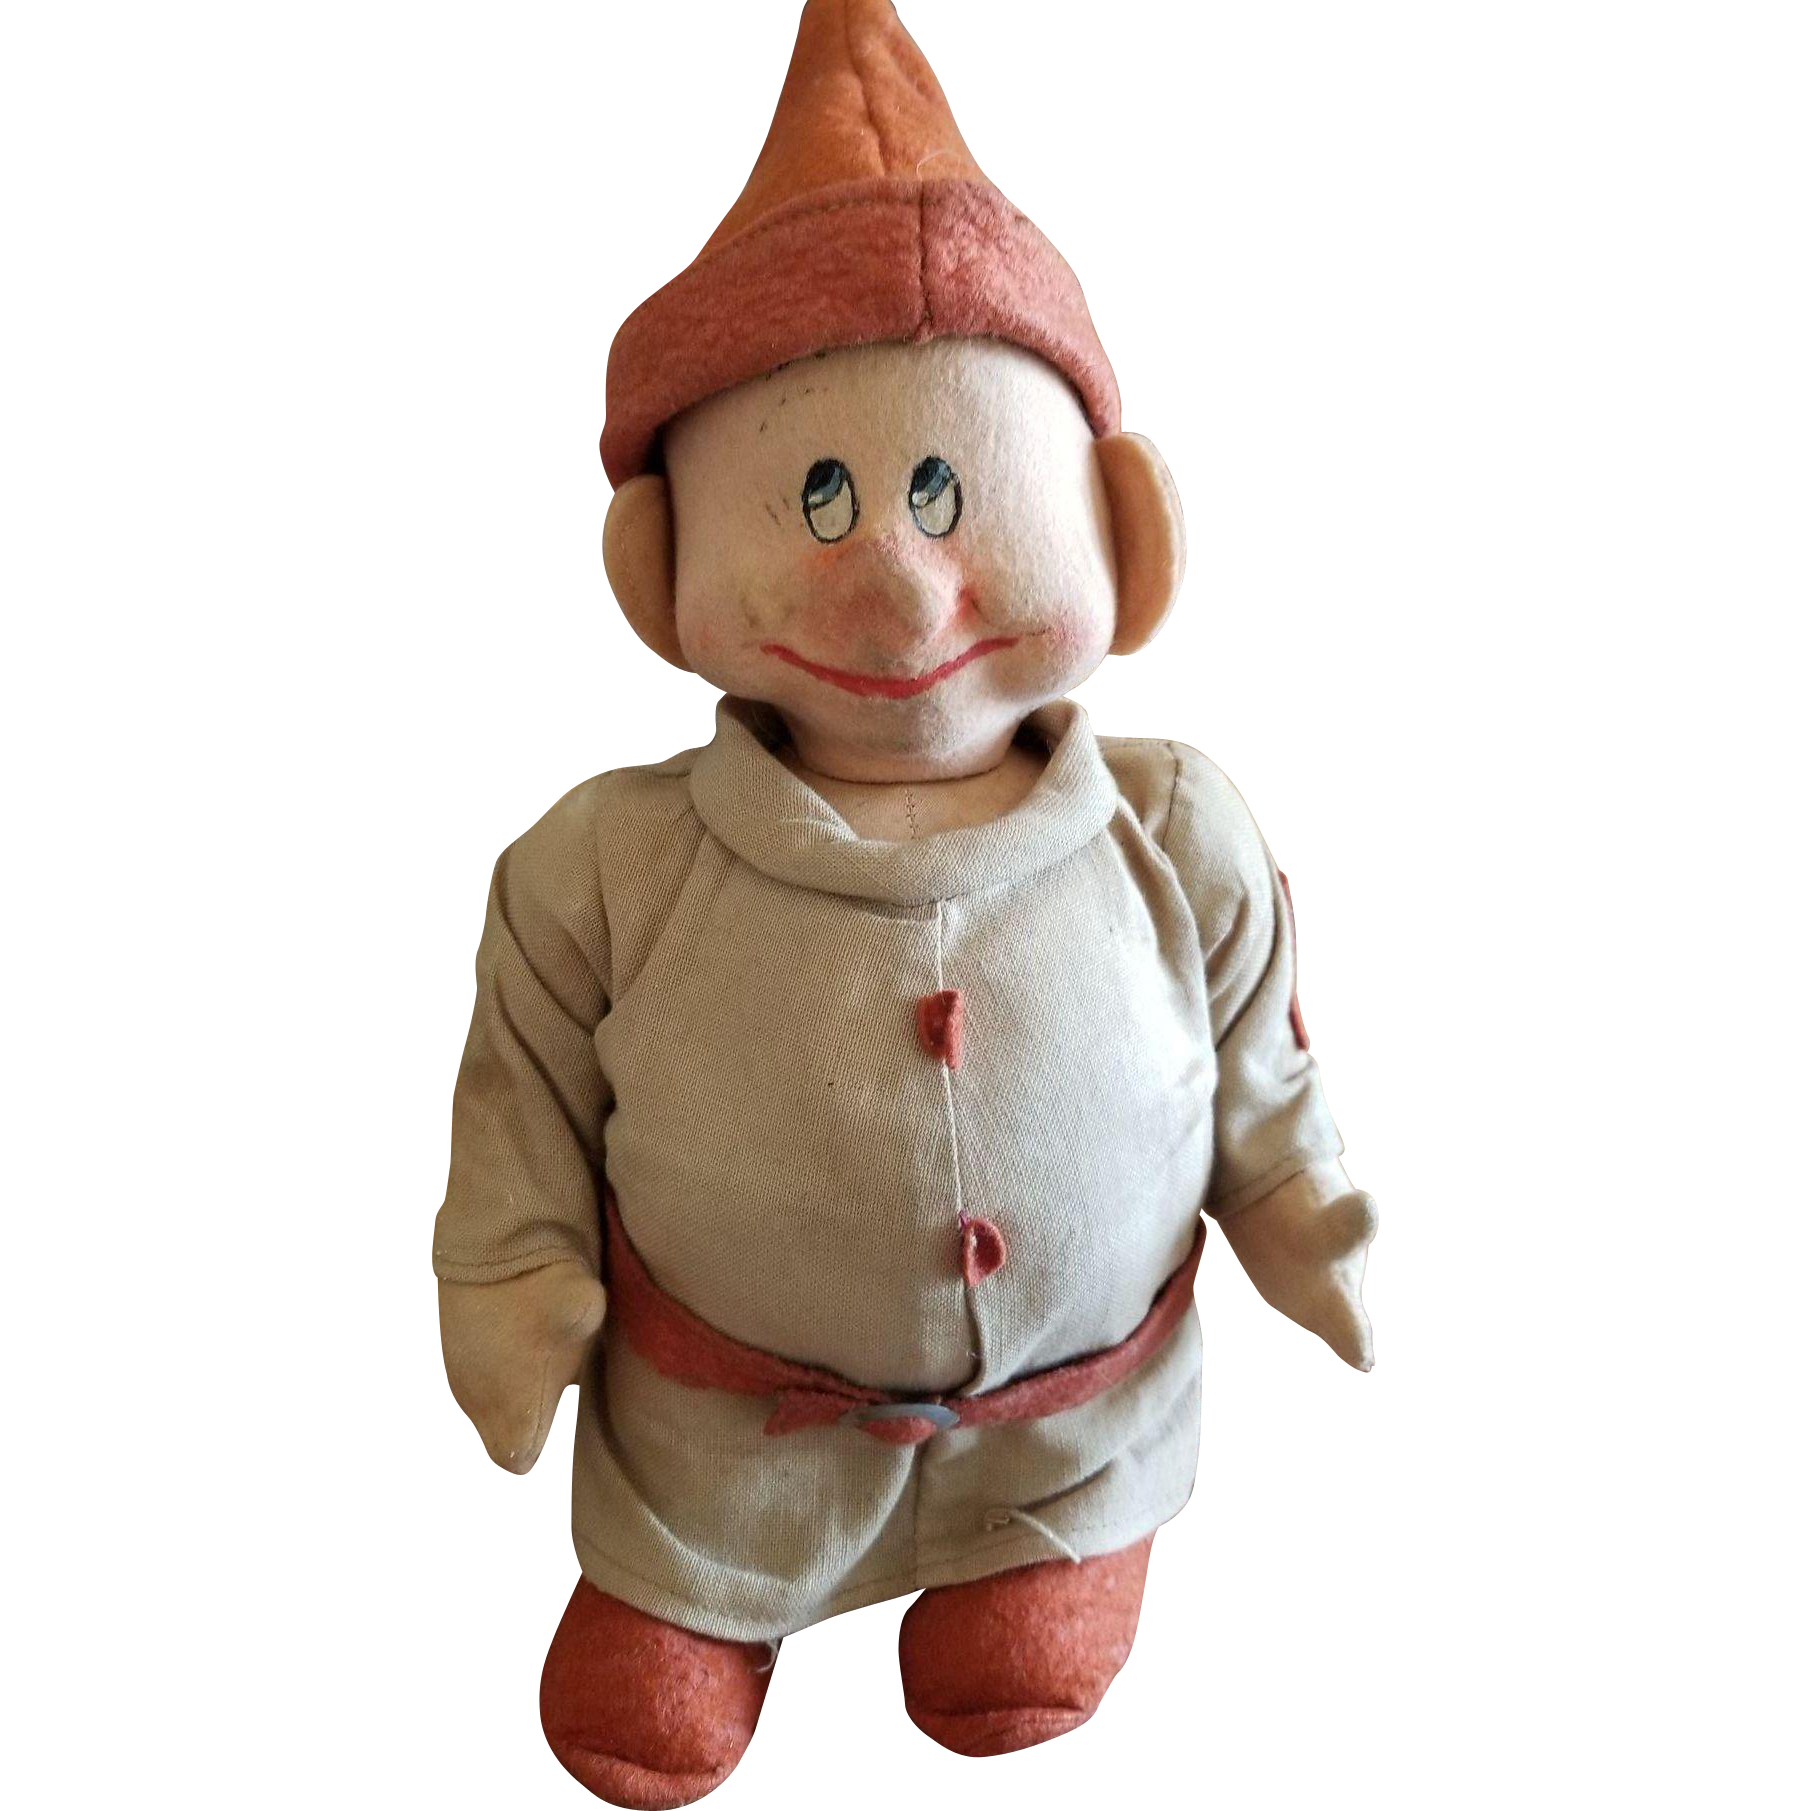 Vintage 1930's Chad Valley Snow White Dopey Doll